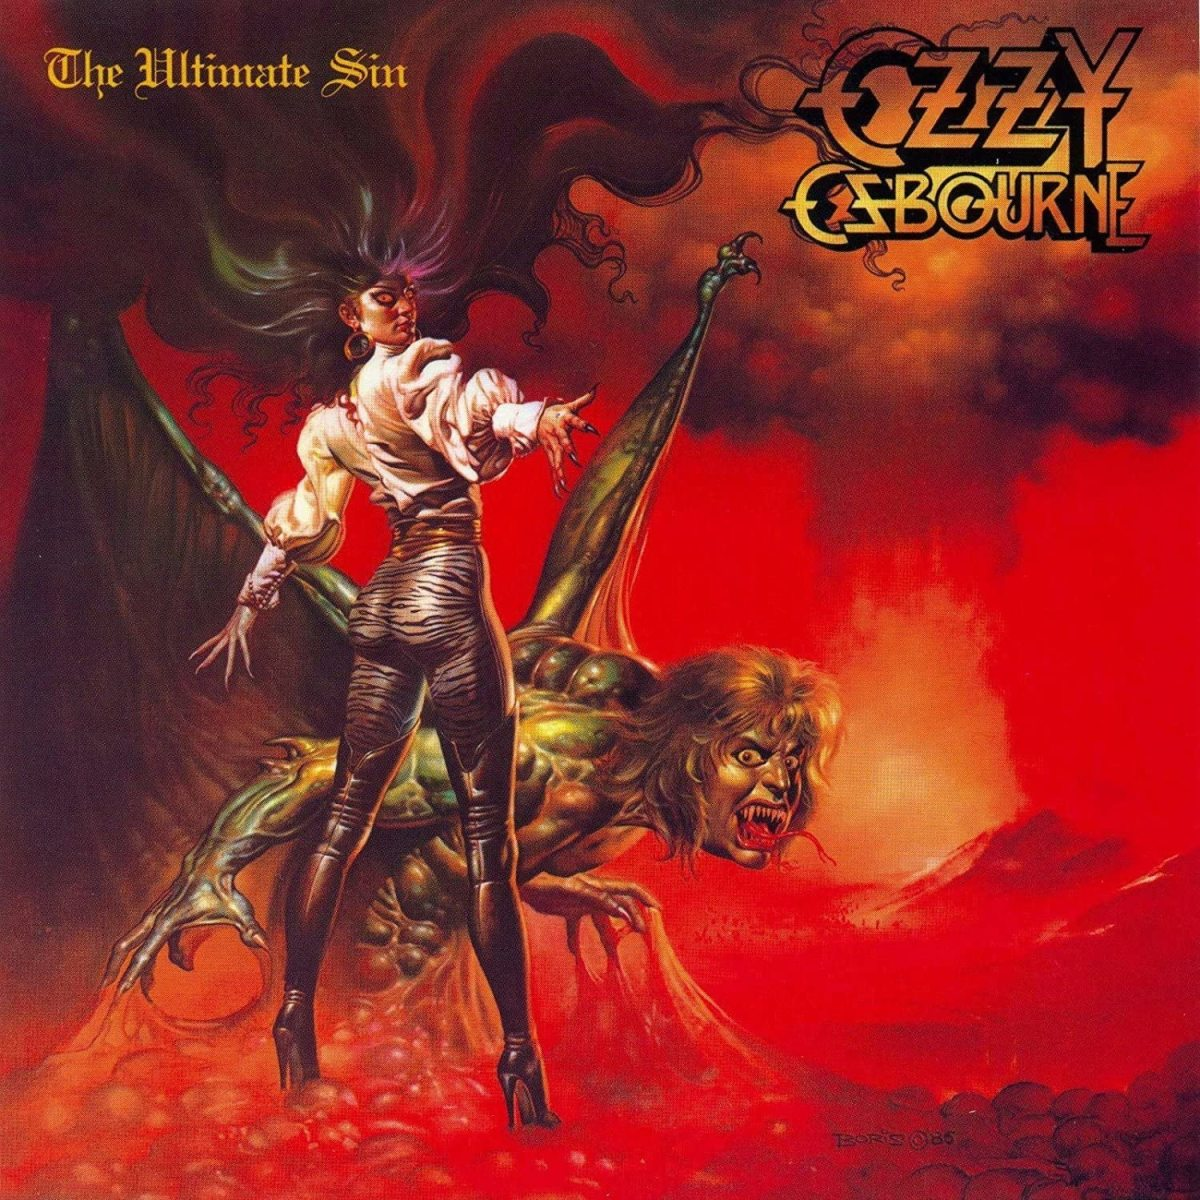 review-of-the-album-called-the-ultimate-sin-by-ozzy-osbourne